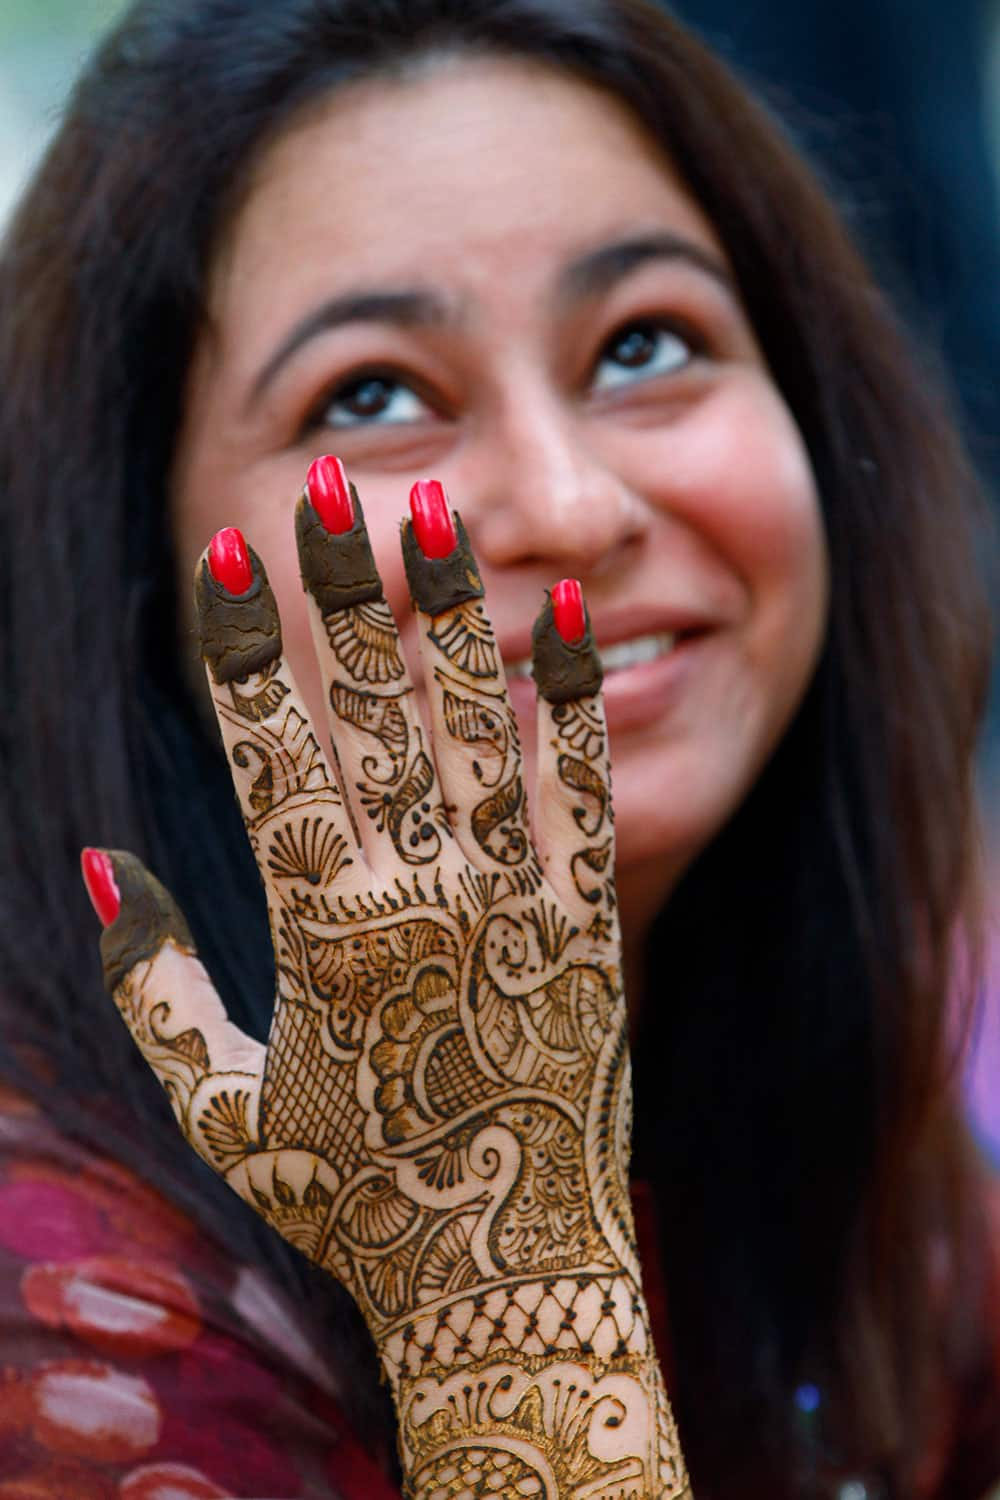 A woman dries her hand after getting it painted with henna on the eve of Hindu festival 'Karwa Chauth' in Allahabad.